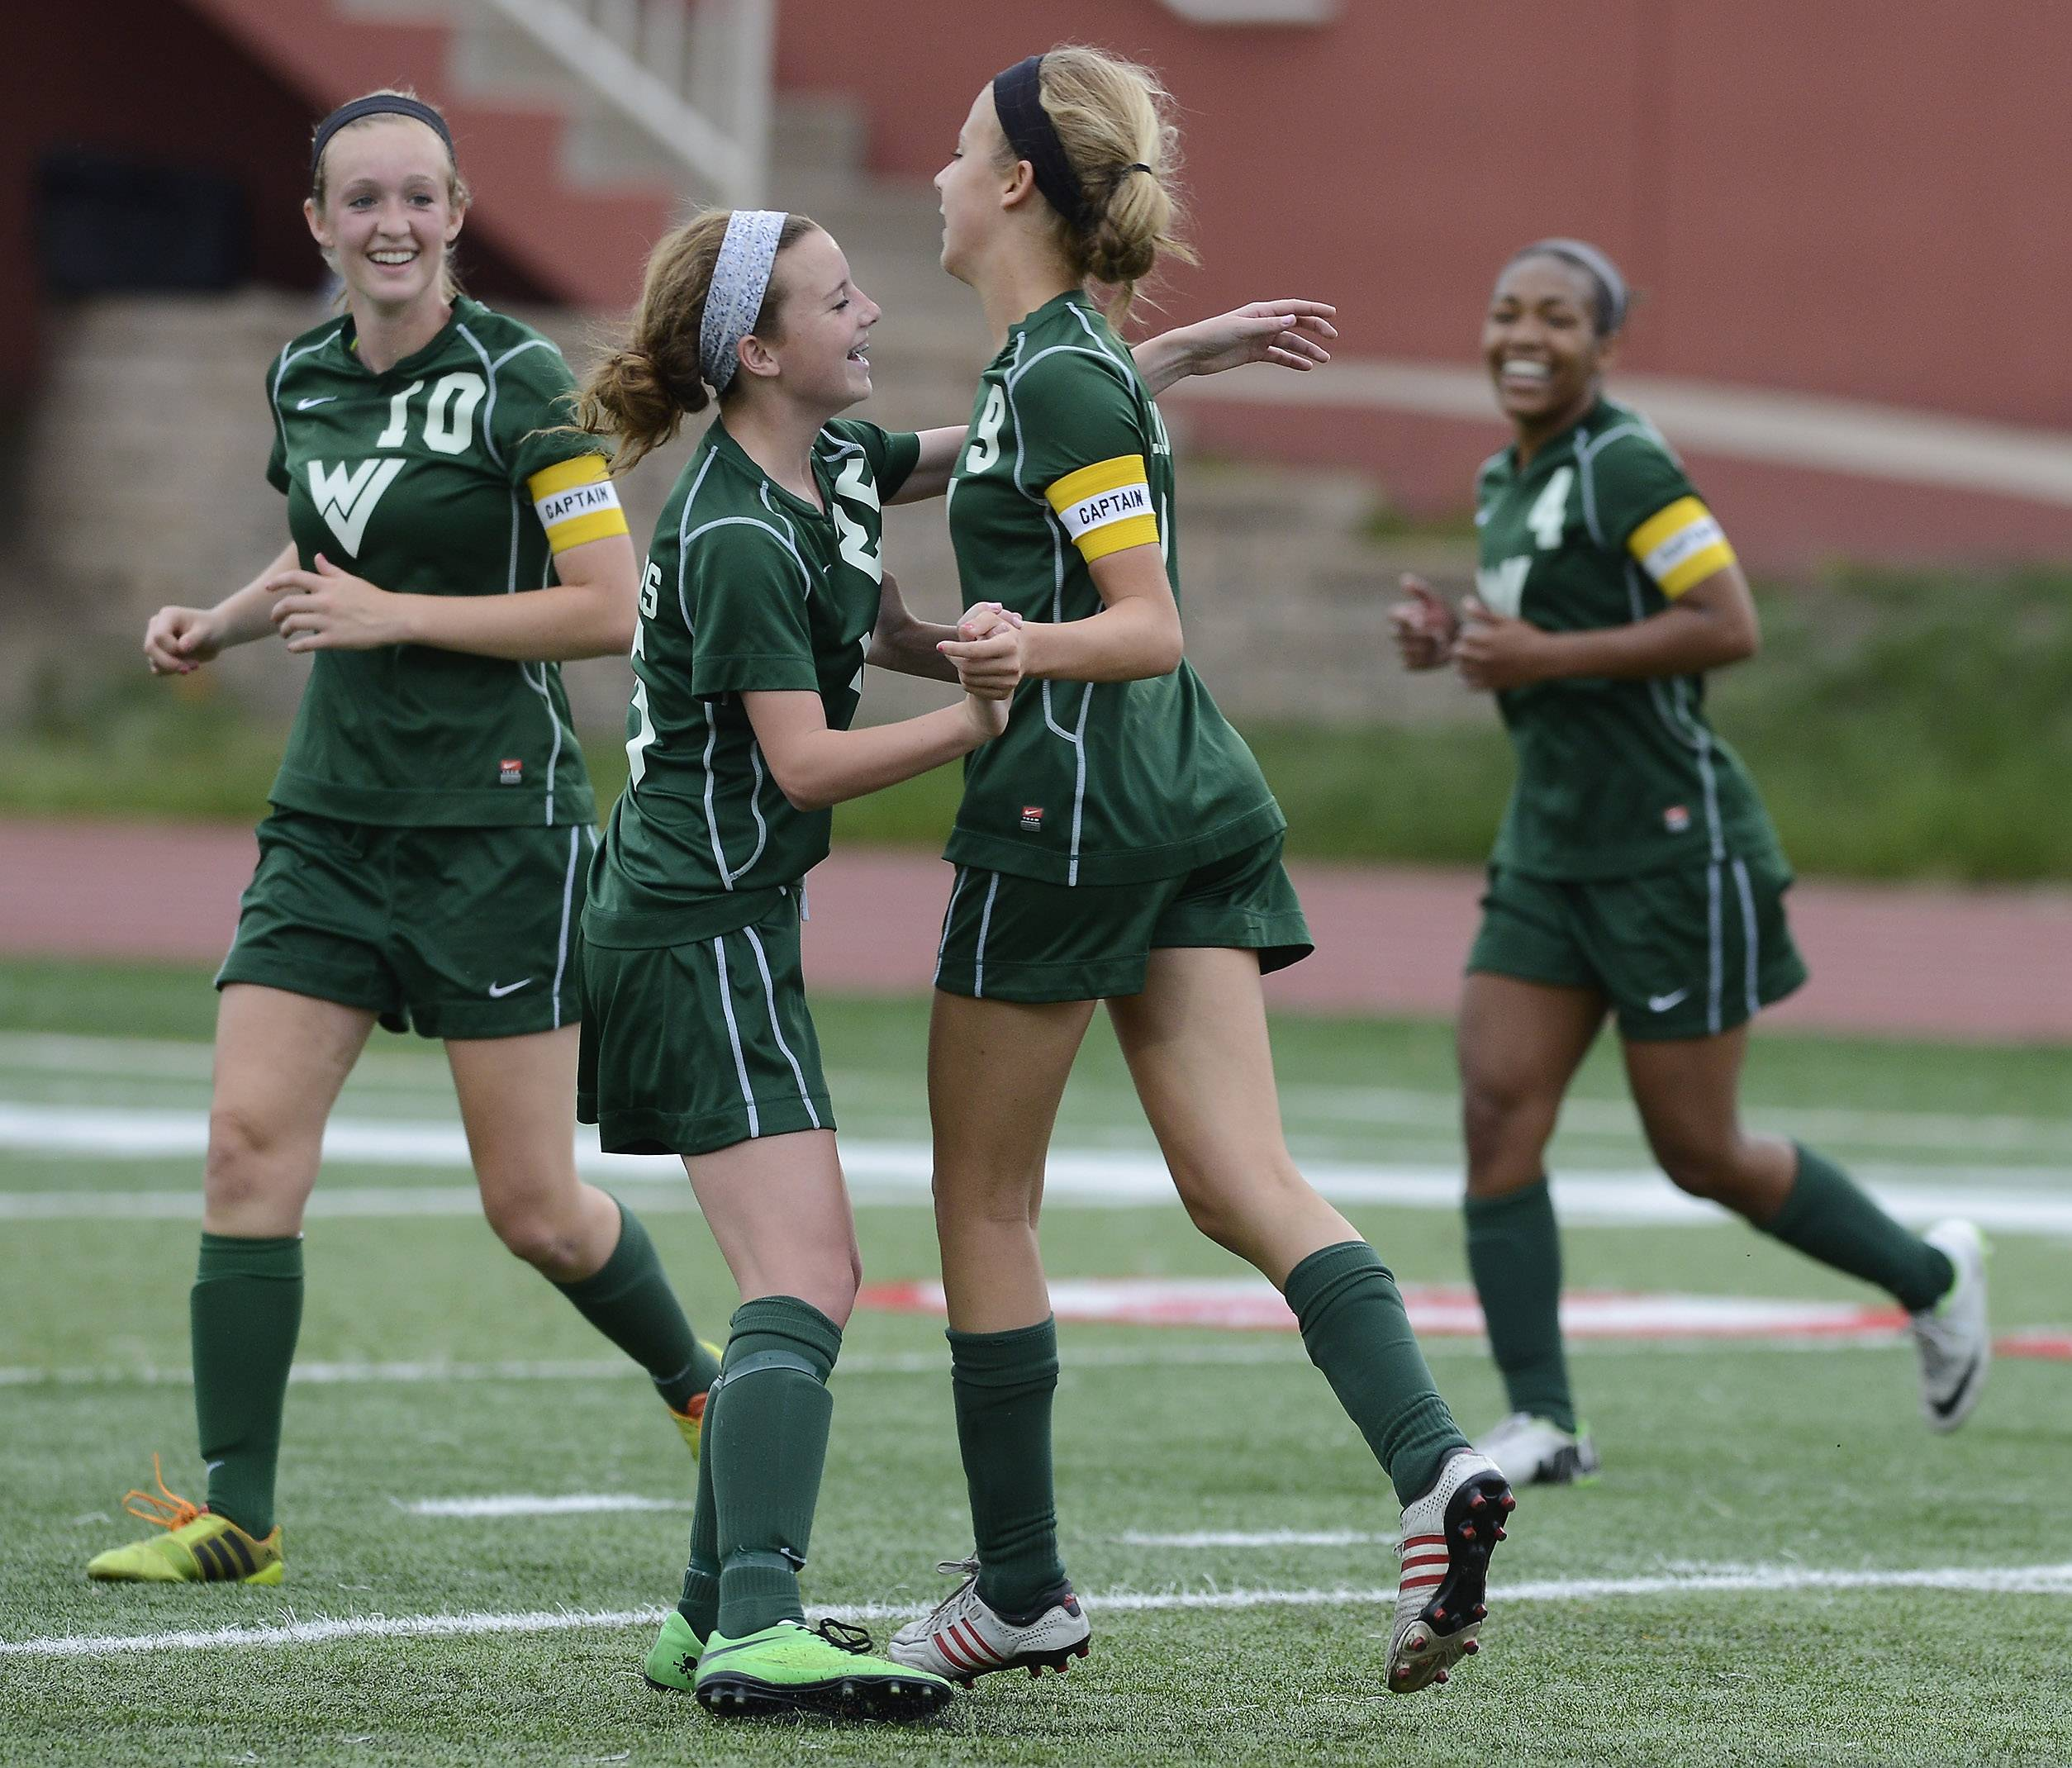 Rachael Brots, second from right, of Waubonsie Valley celebrates her first-half goal with teammates, from left,  Mackenzie Fuller, Sarah Griffith and Kristen Dodson during the Class 3A state third-place game against Lincoln-Way North at North Central College in Naperville on Saturday.